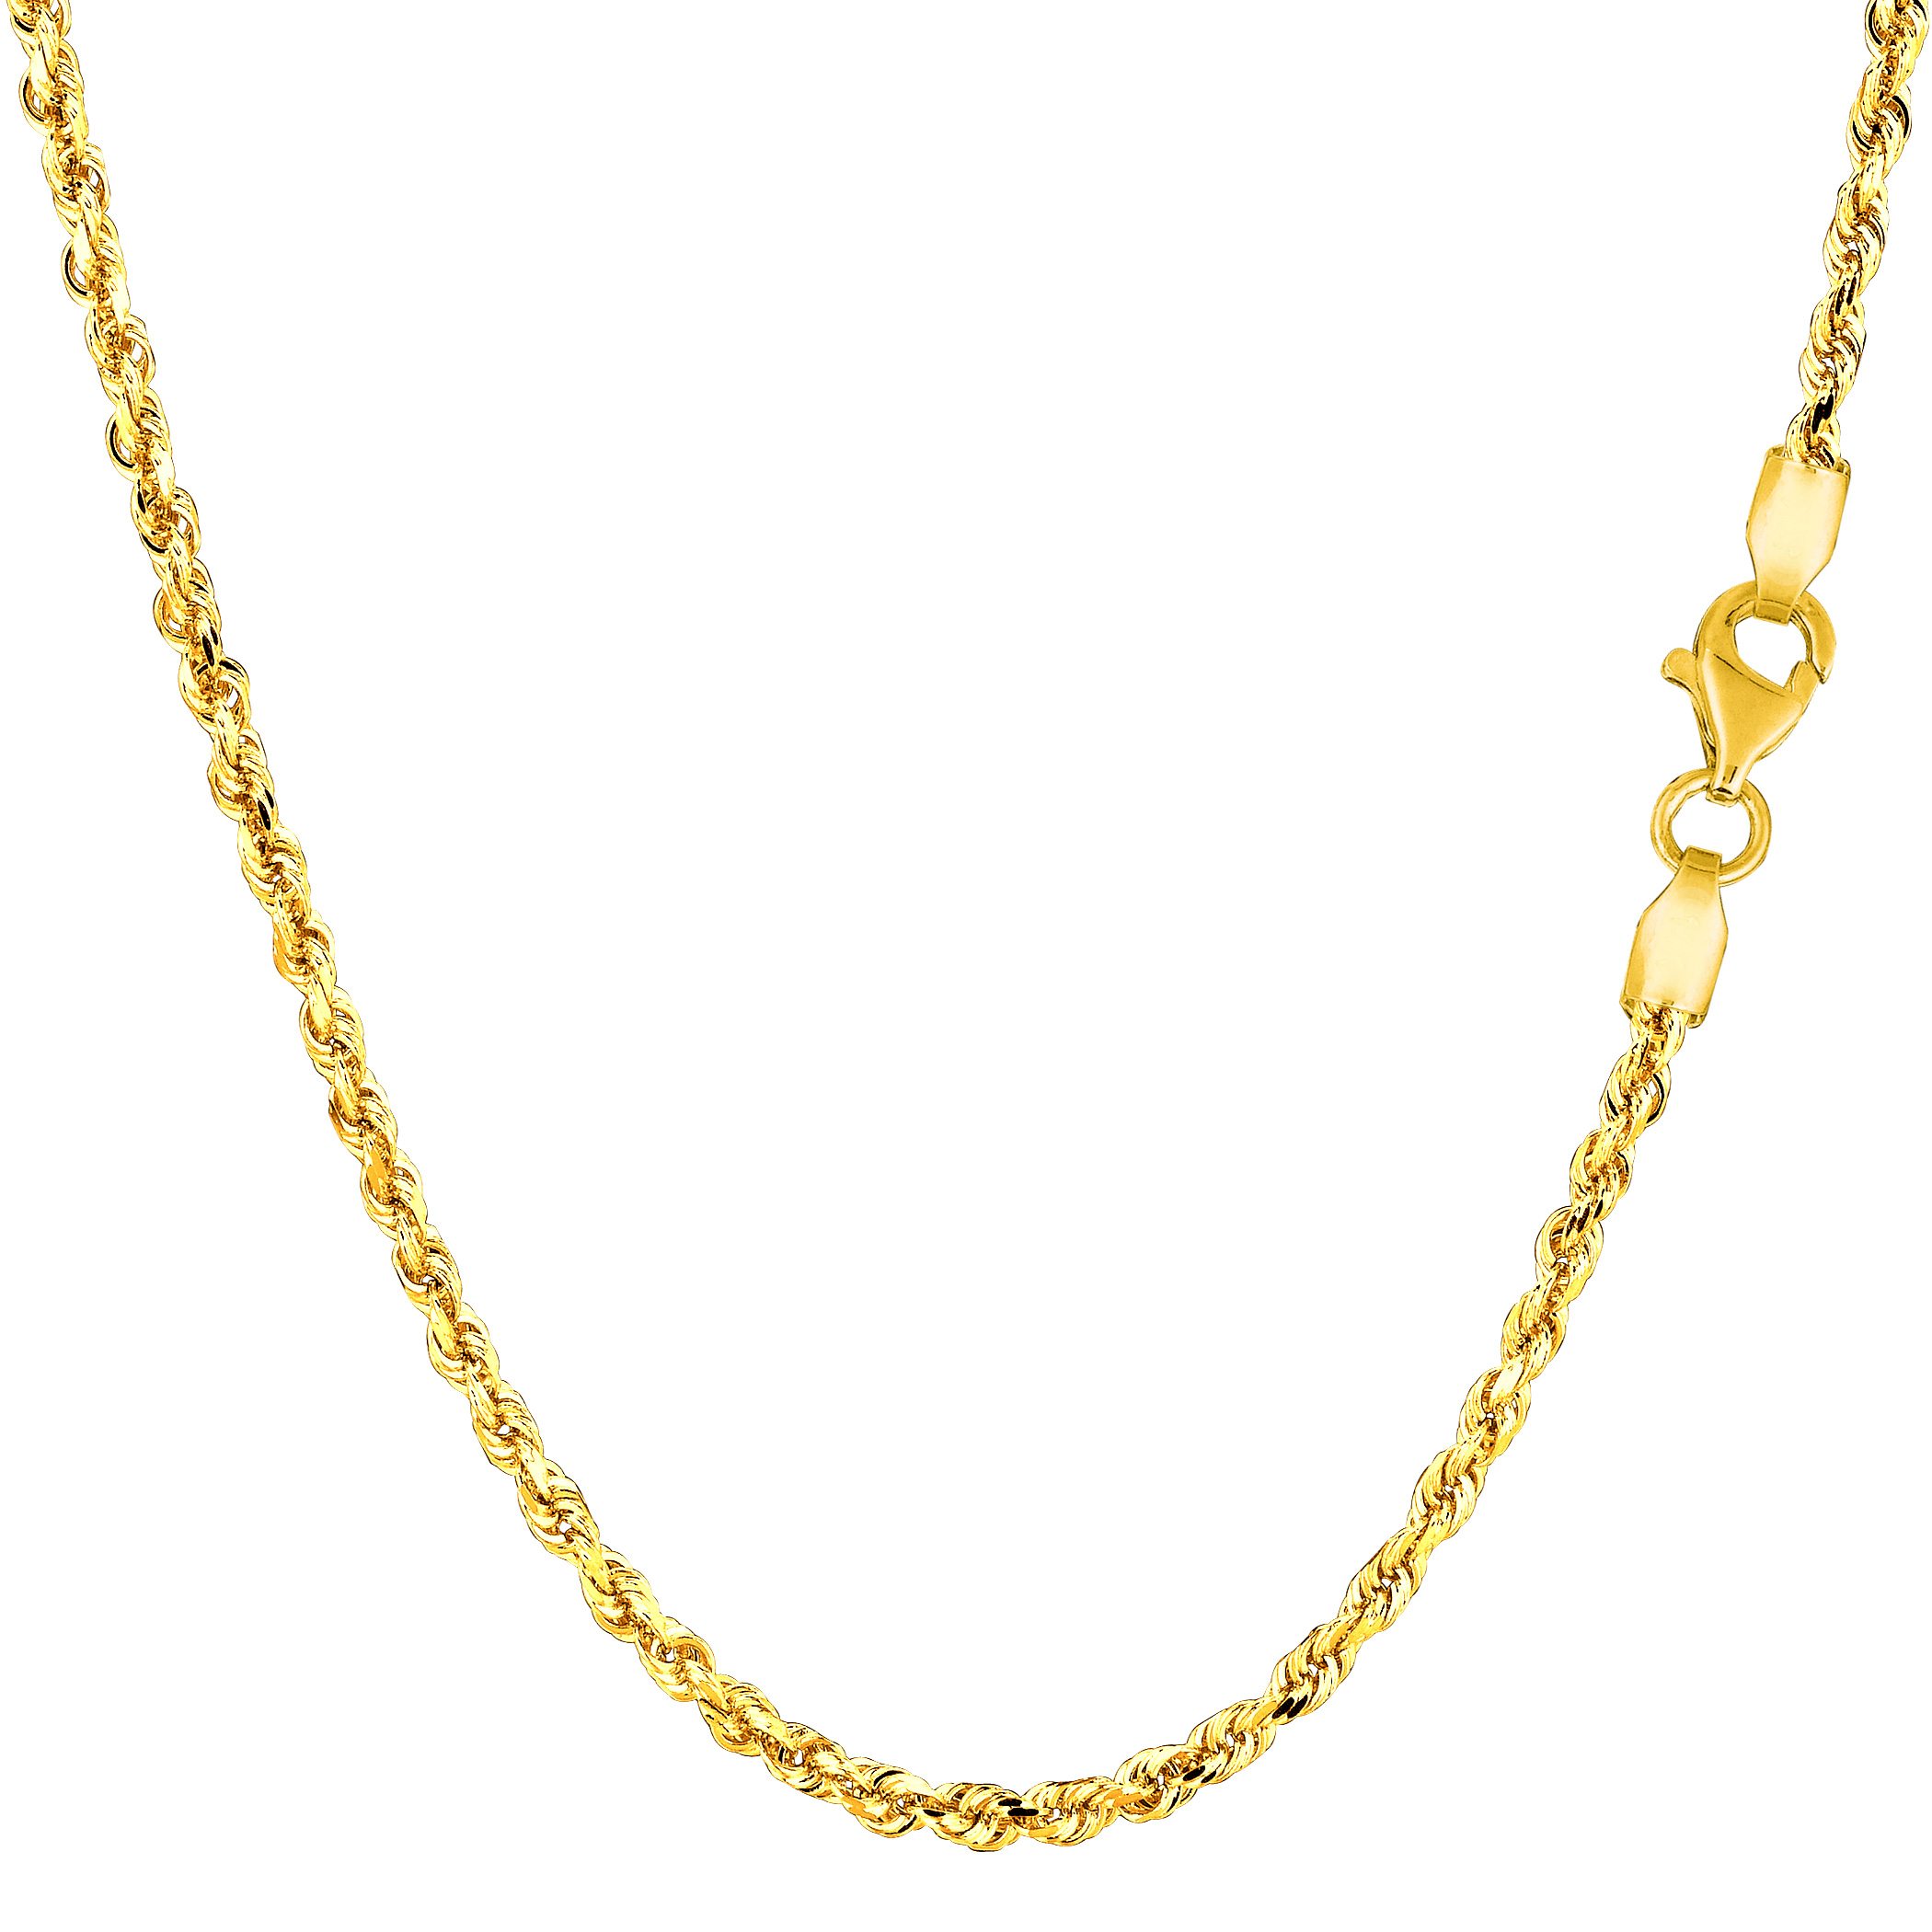 "14k Yellow Solid Gold Diamond Cut Rope Chain Necklace, 2.25mm, 22"" - image 1 de 1"